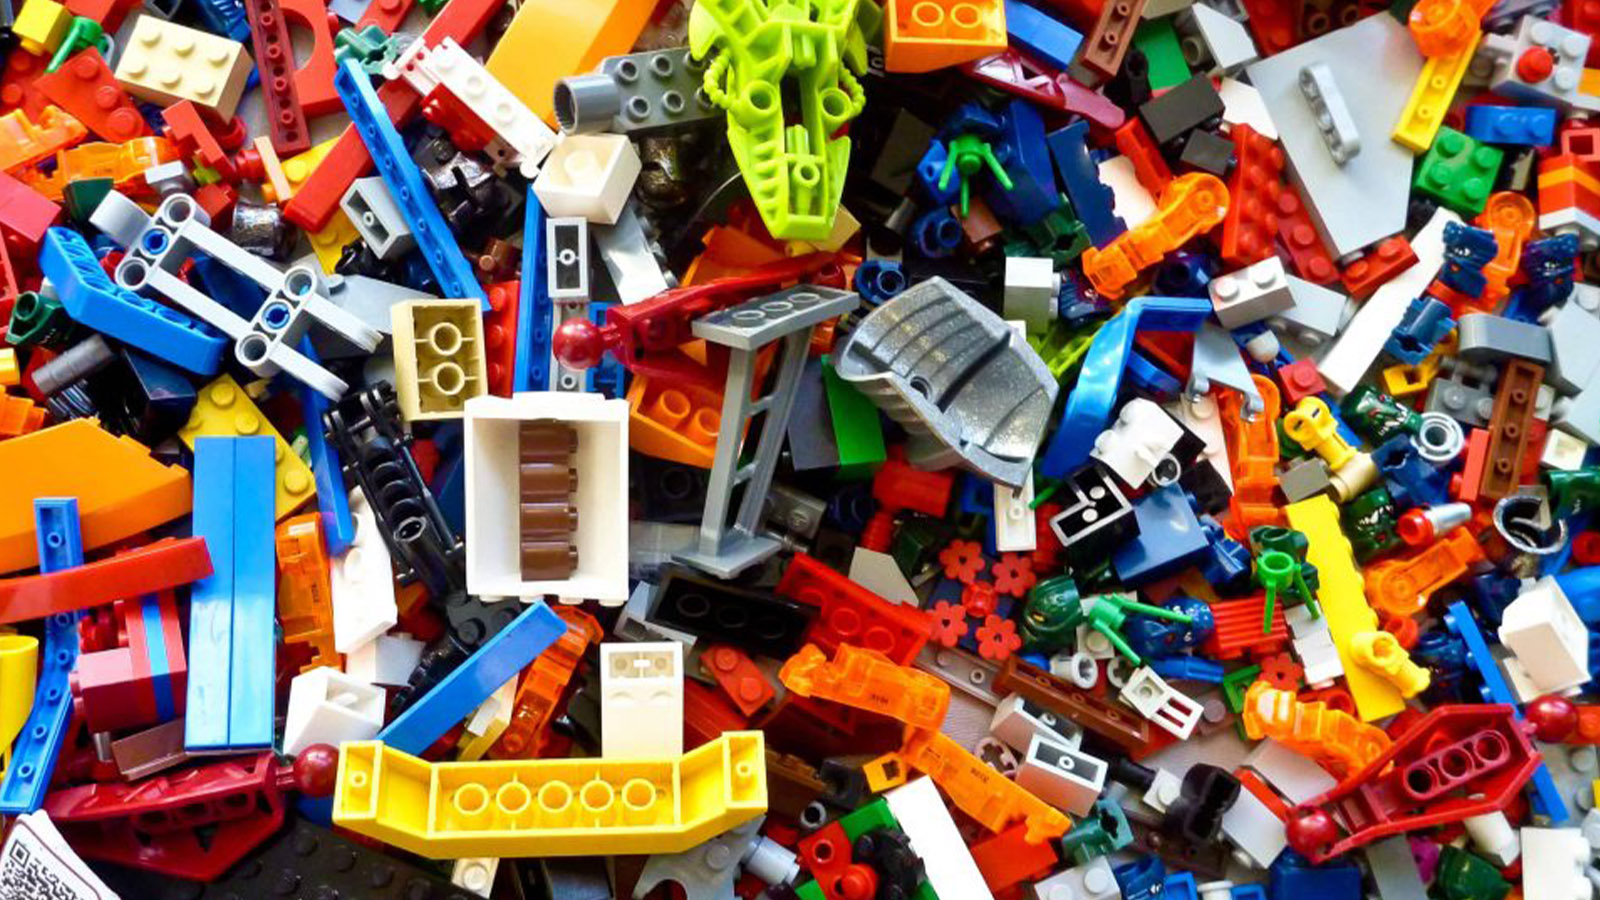 Lego Makes Sustainability Commitment With Recycling Initiative